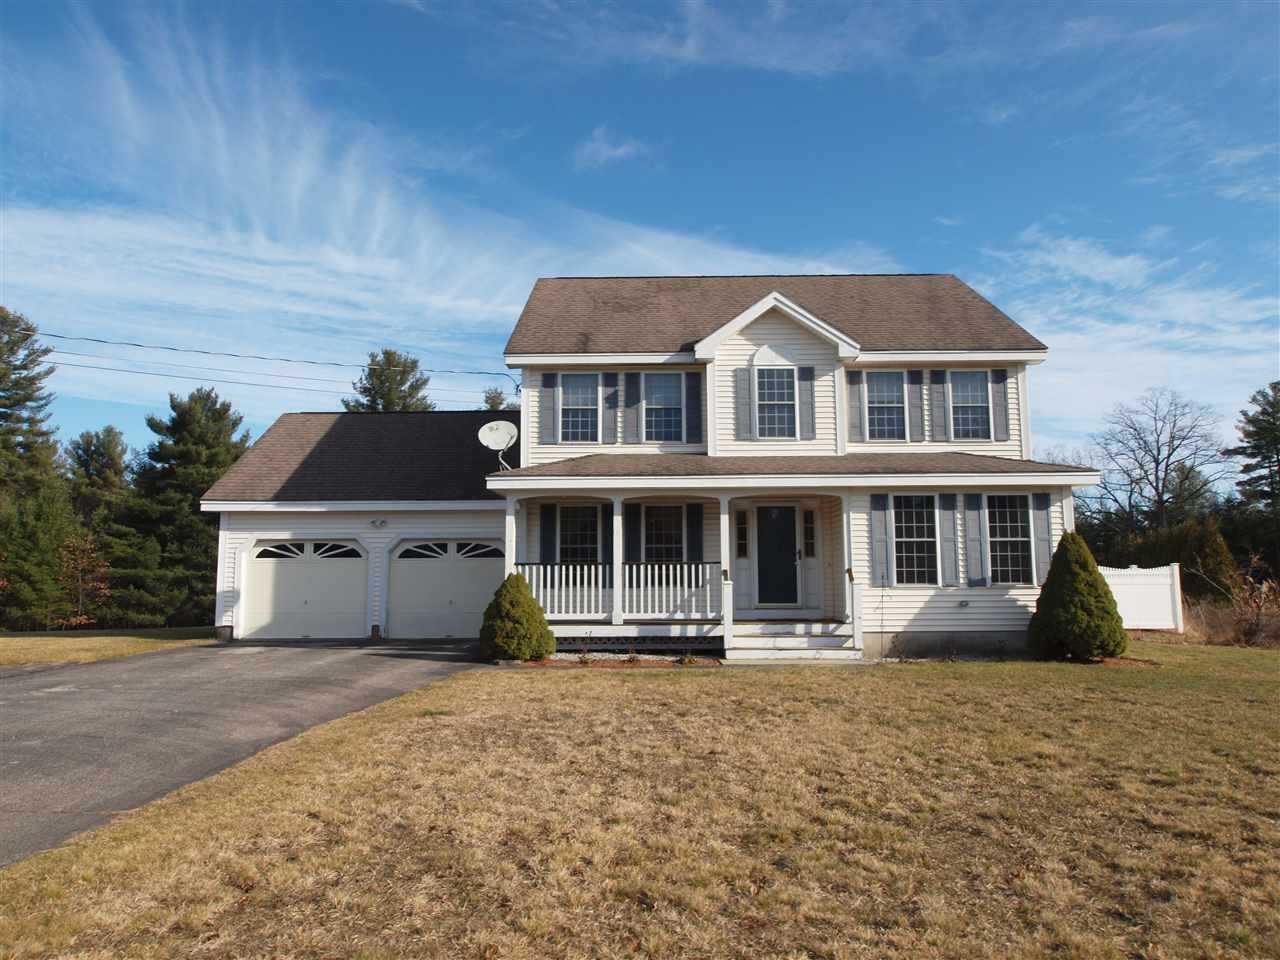 MLS 4786791: 6 Perry Court, Litchfield NH